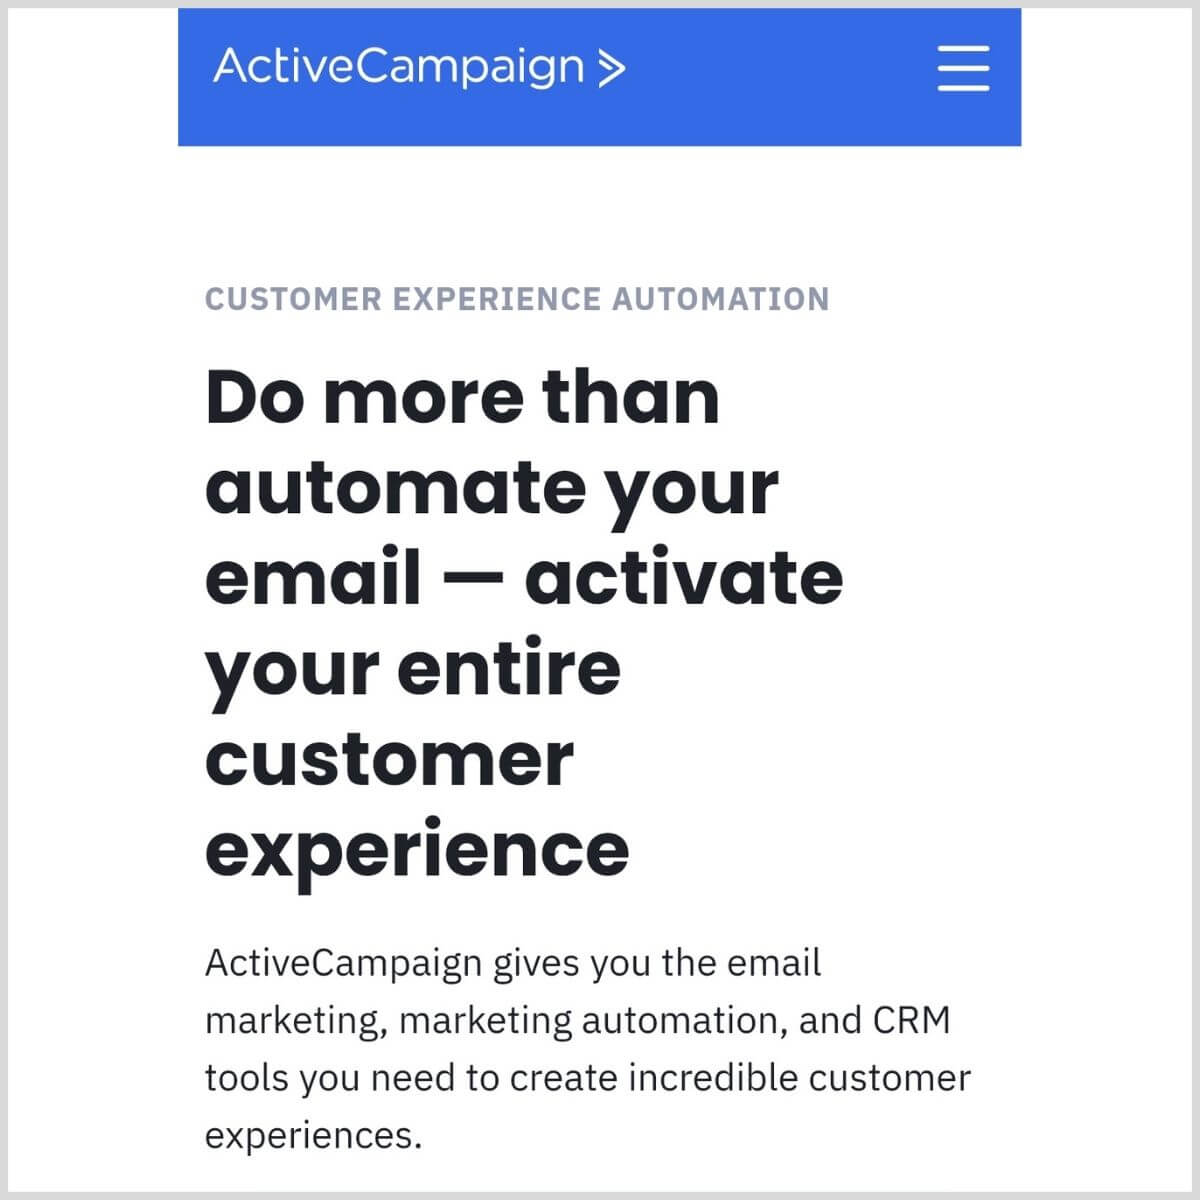 ActiveCampaign homepage